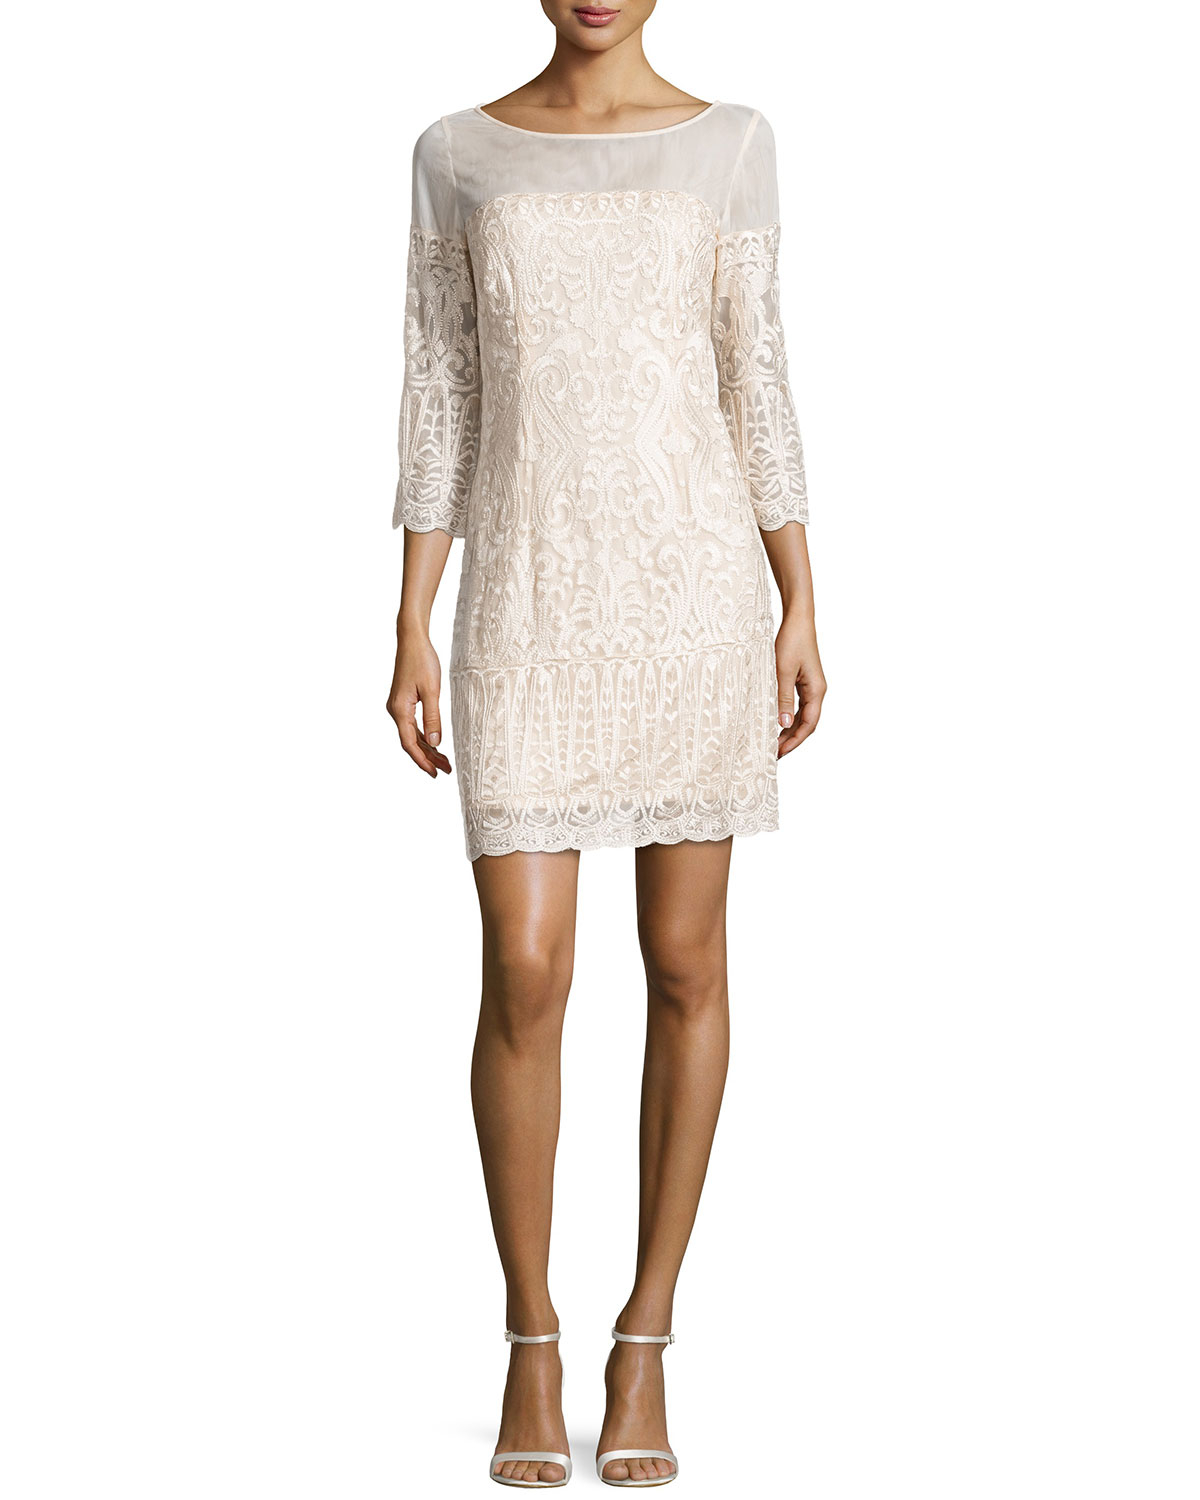 Laundry by shelli segal mesh embroidered sheath dress in for Neiman marcus dresses for wedding guest